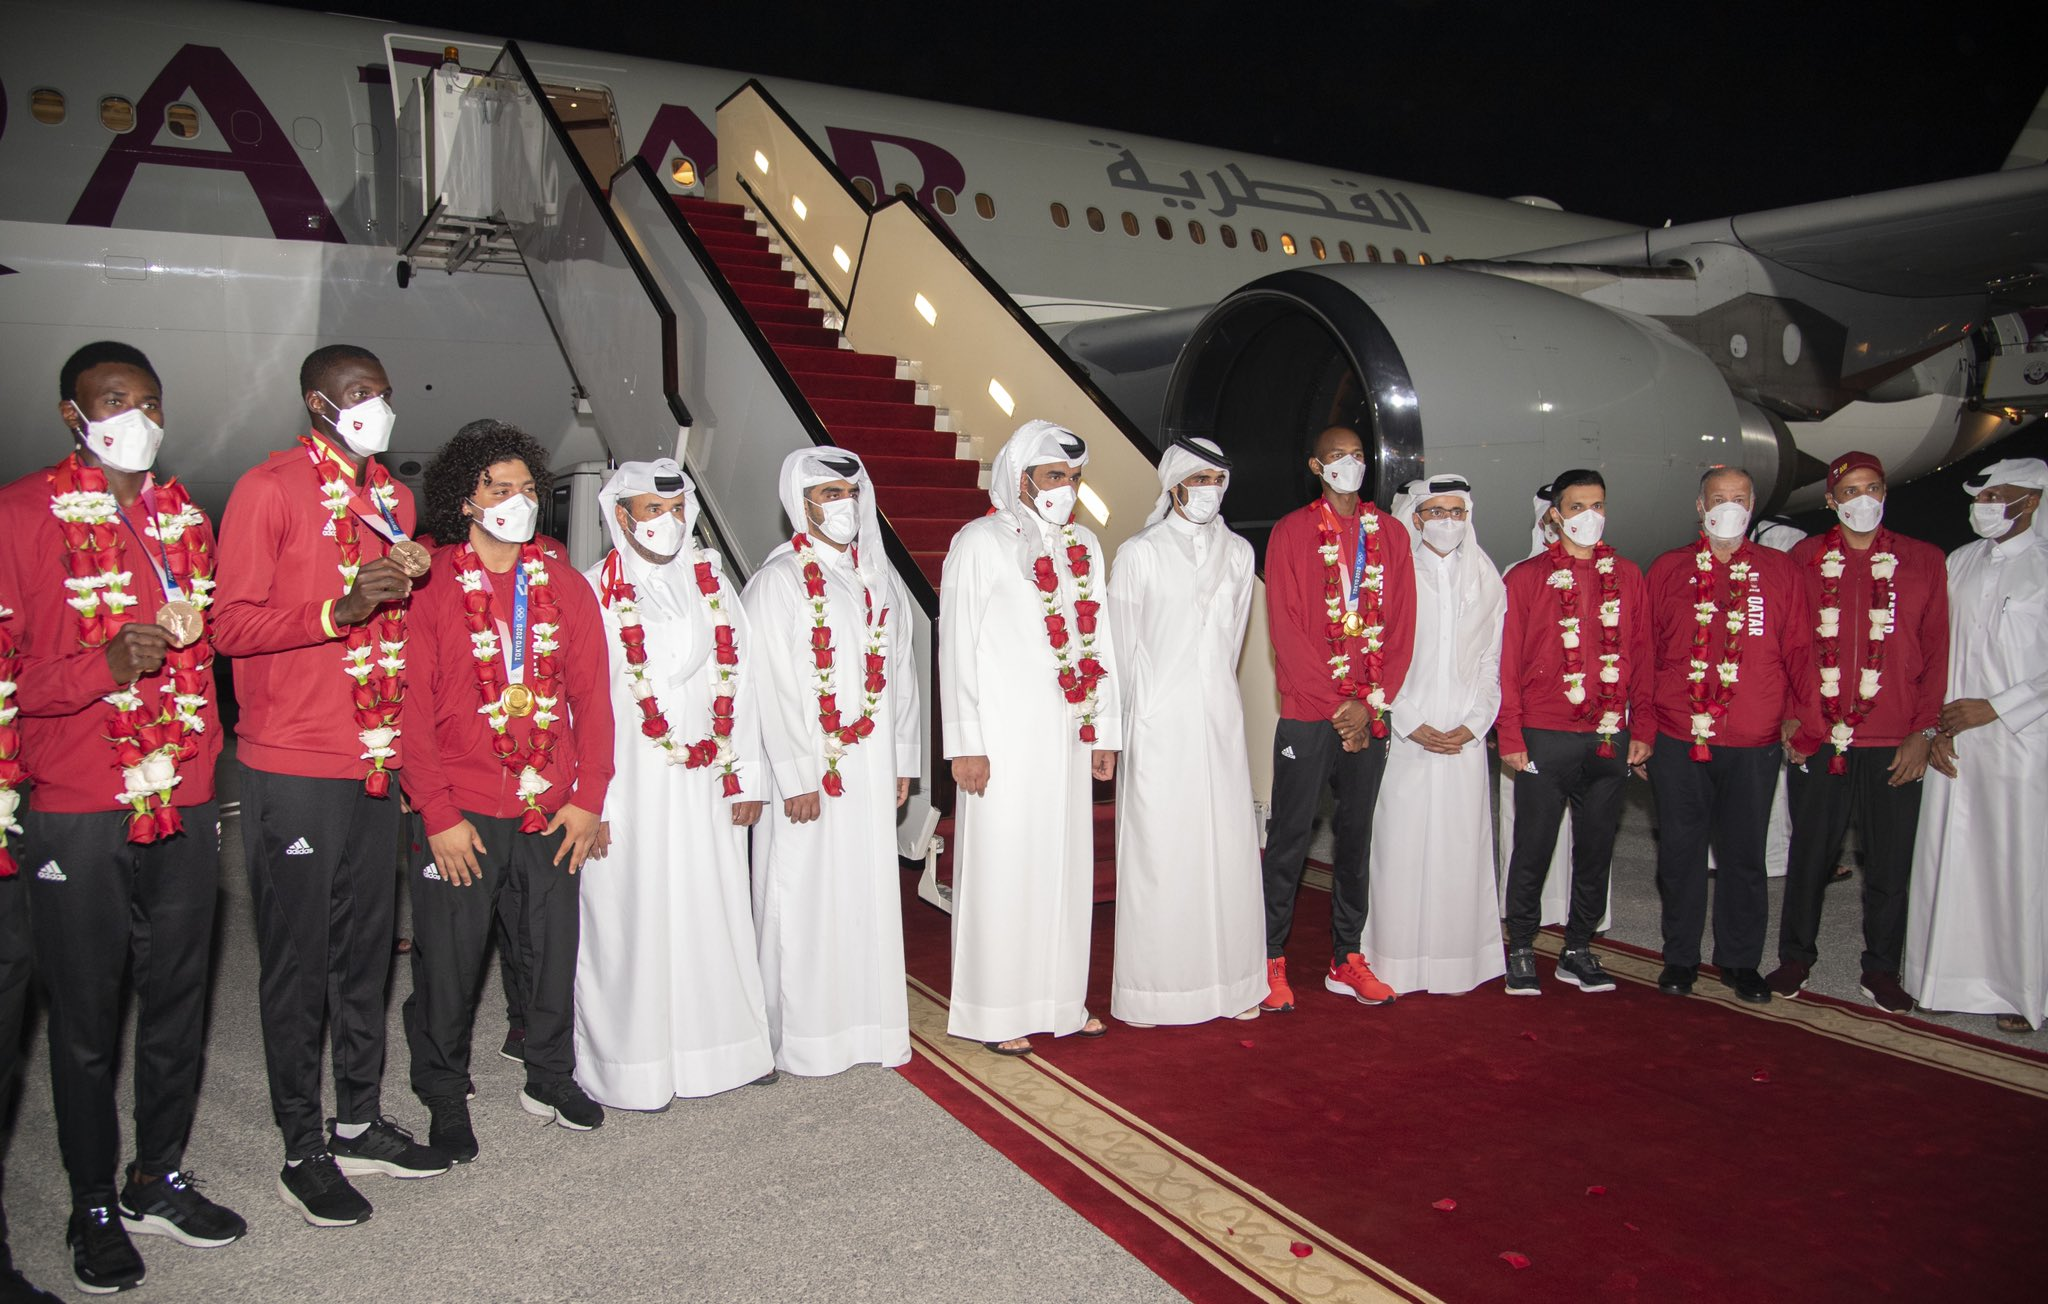 Sheikh Joaan: The Participation in Tokyo Olympics Is the Best in the Qatari Sports History